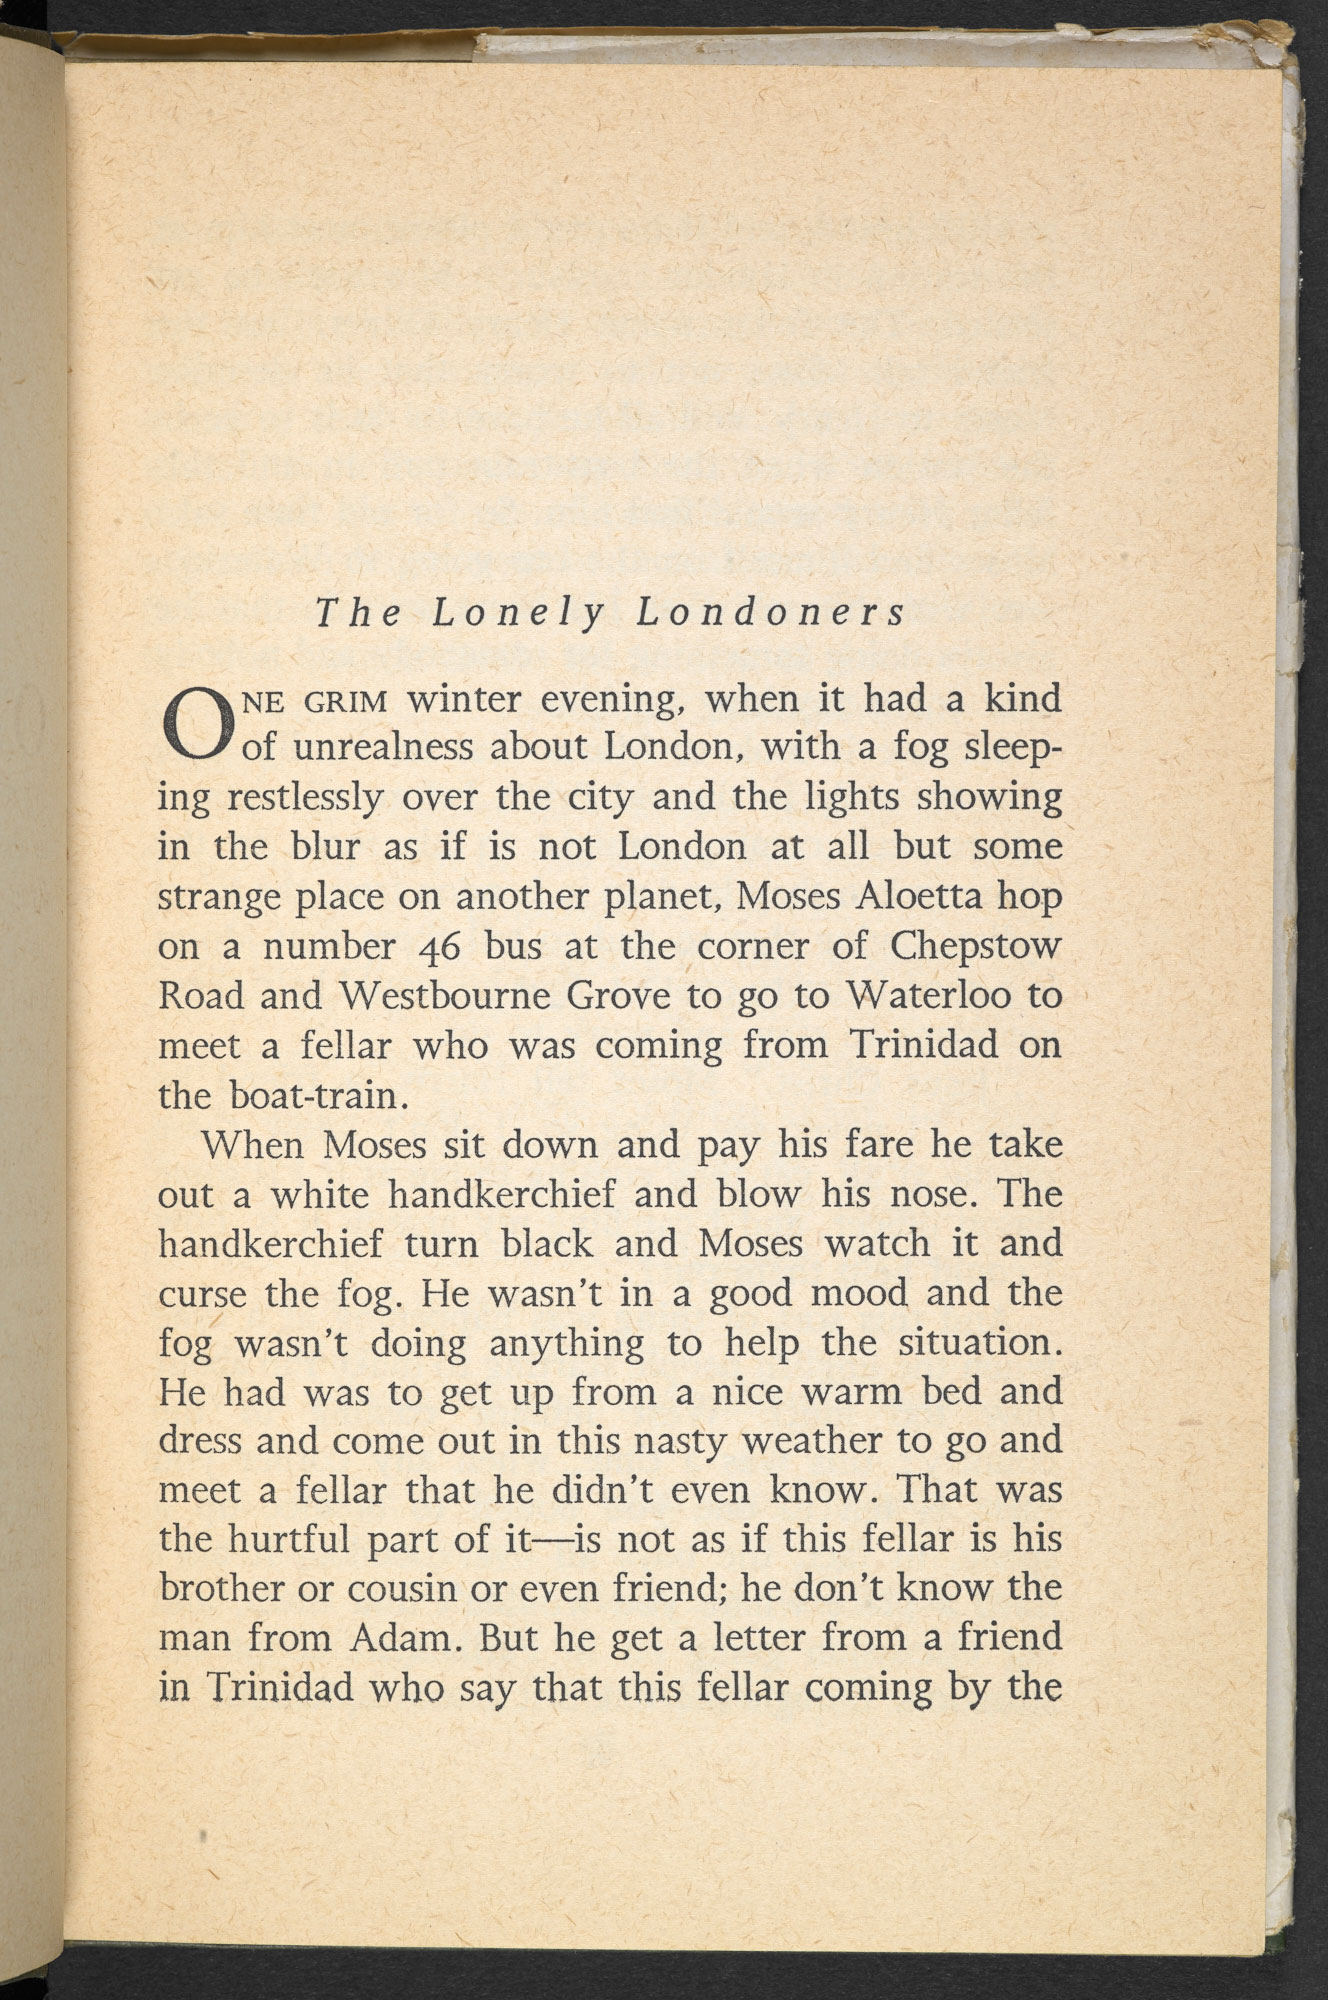 sam selvon the lonely londoners essay